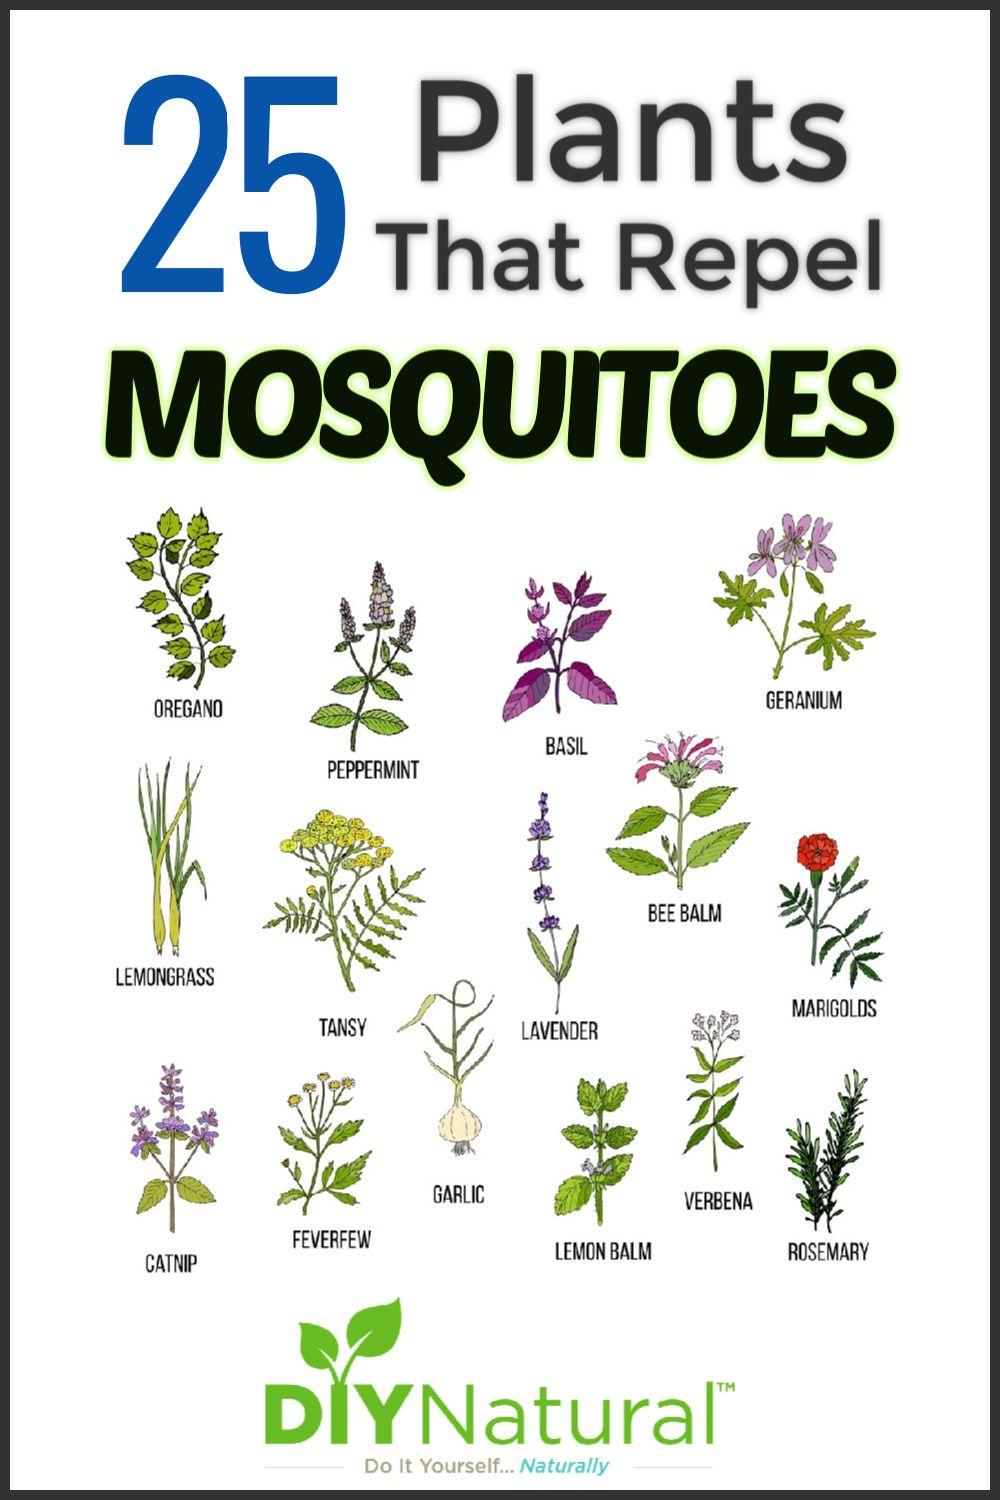 Mosquito Repellent Plants: 25 Plants That Repel Mosquitoes Naturally!